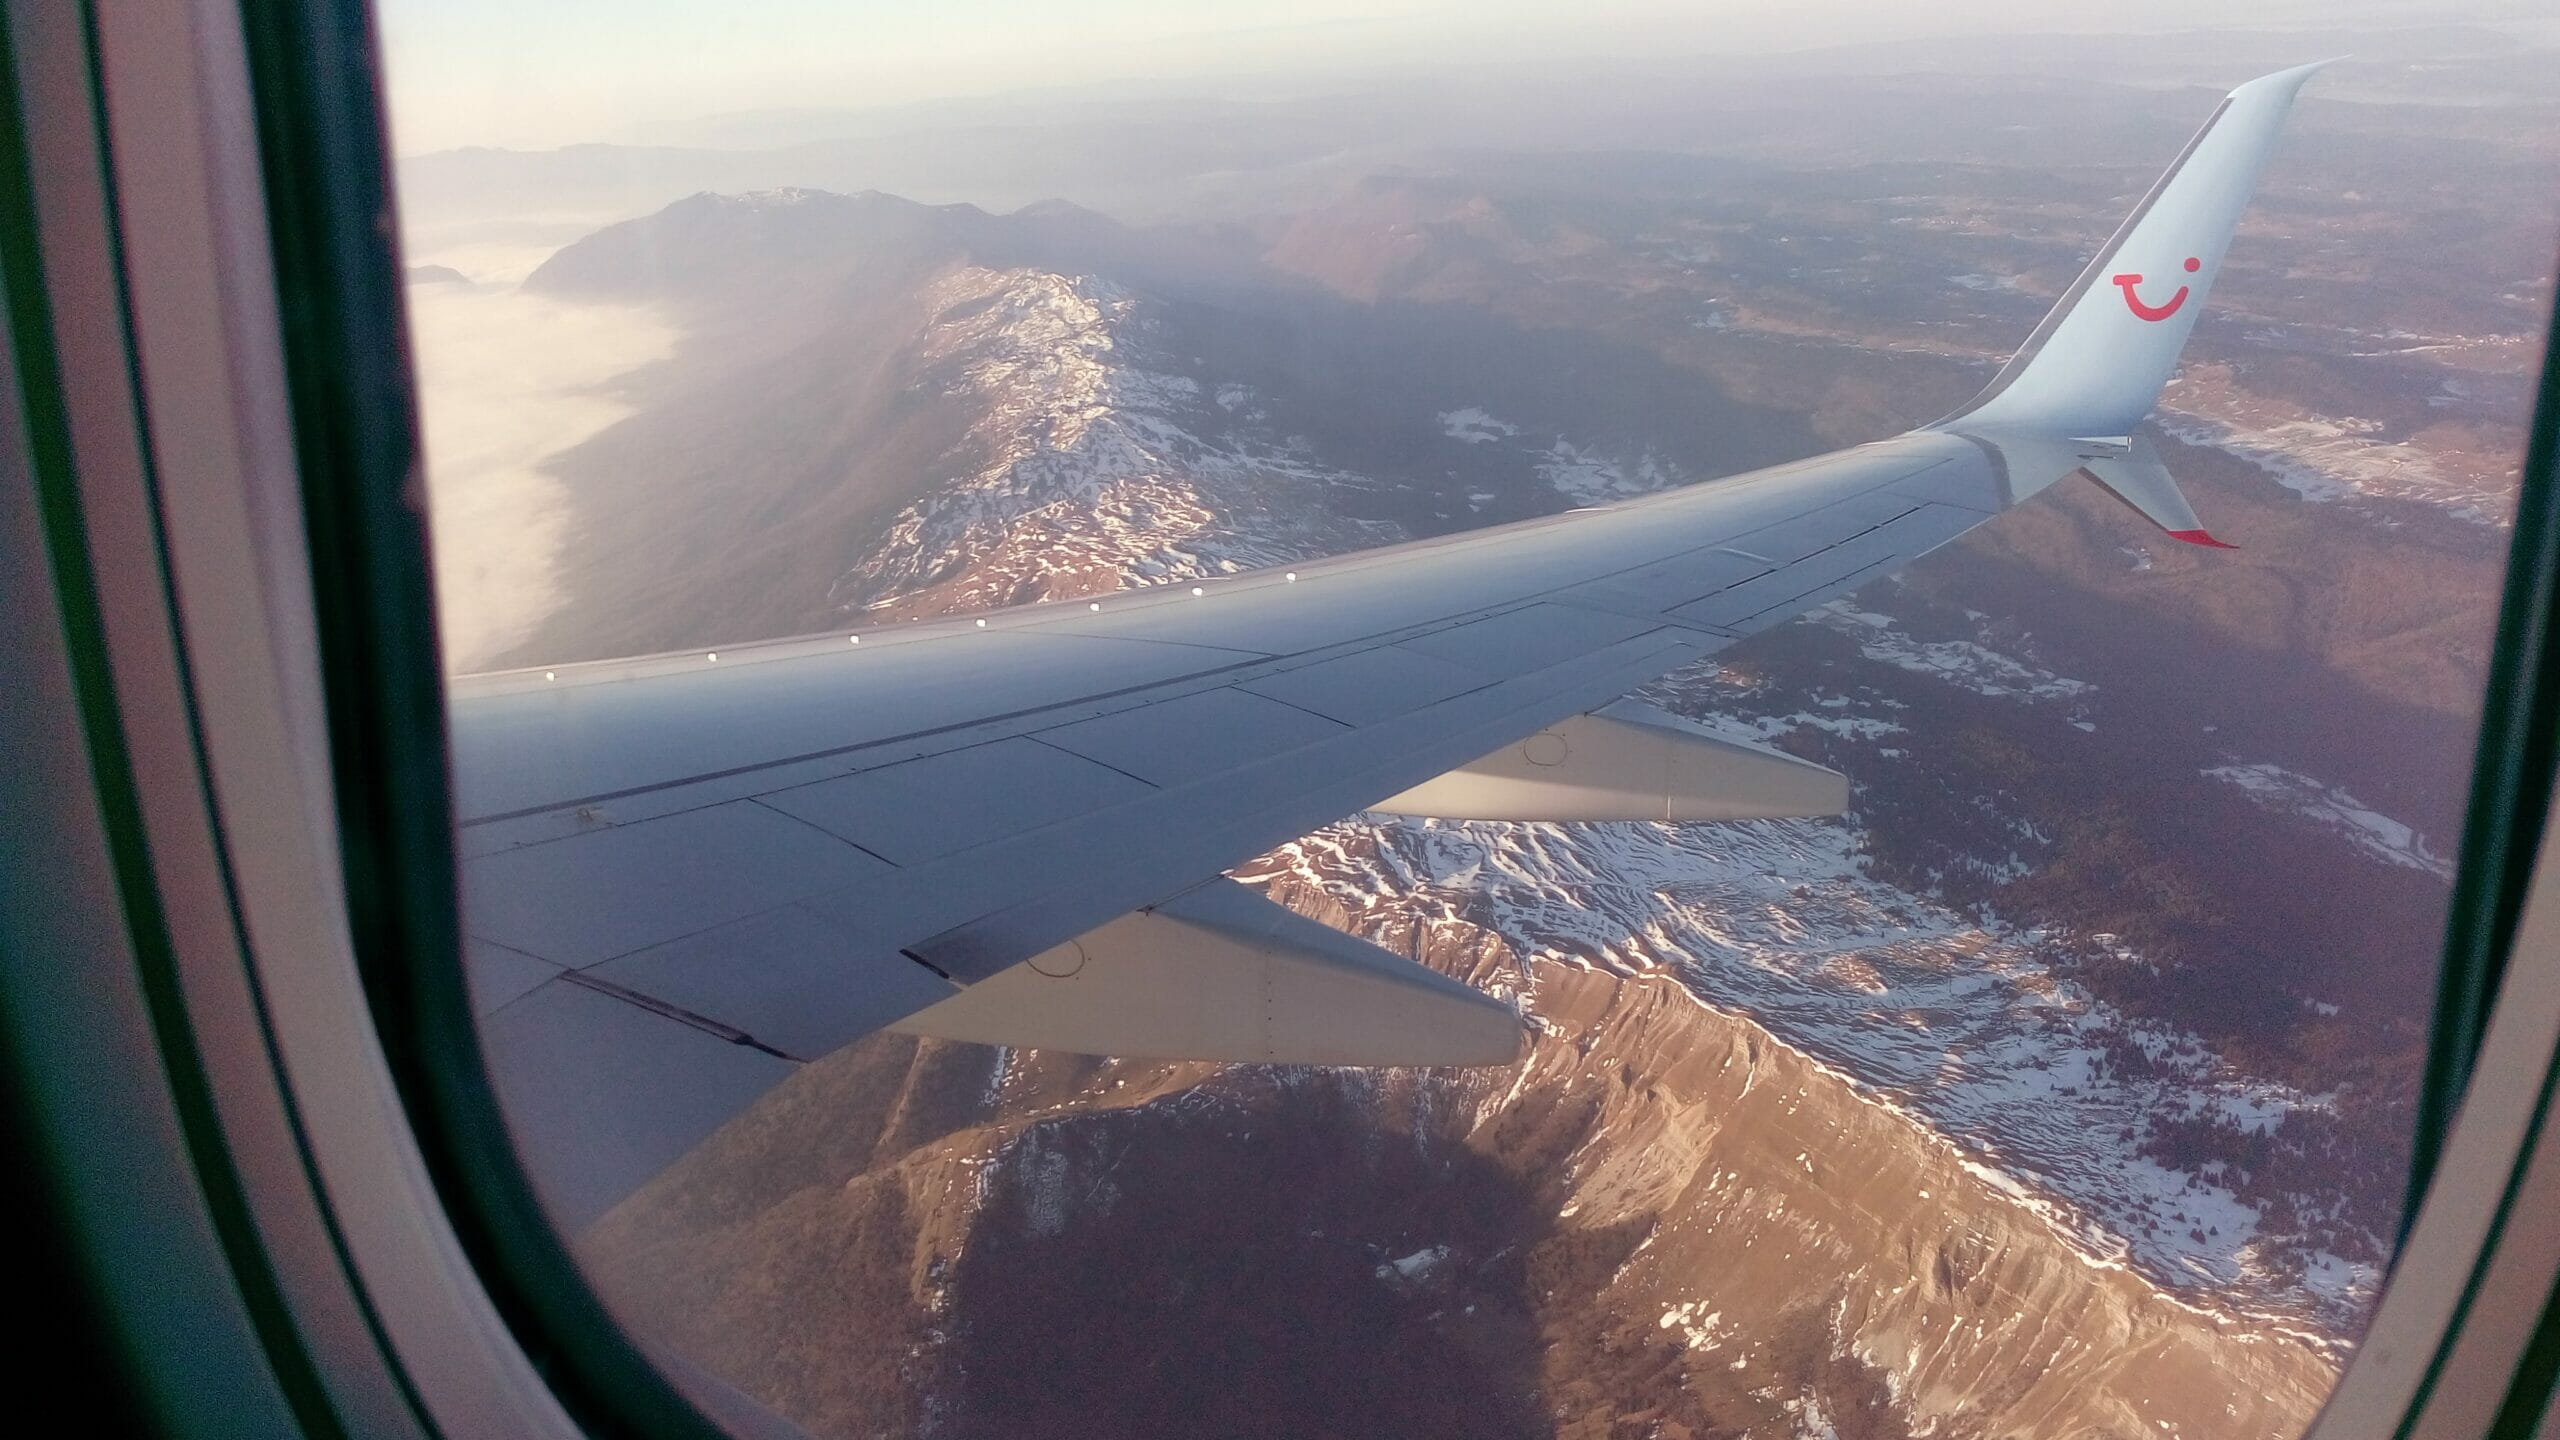 Airplane wing over snowy mountains seen out of window